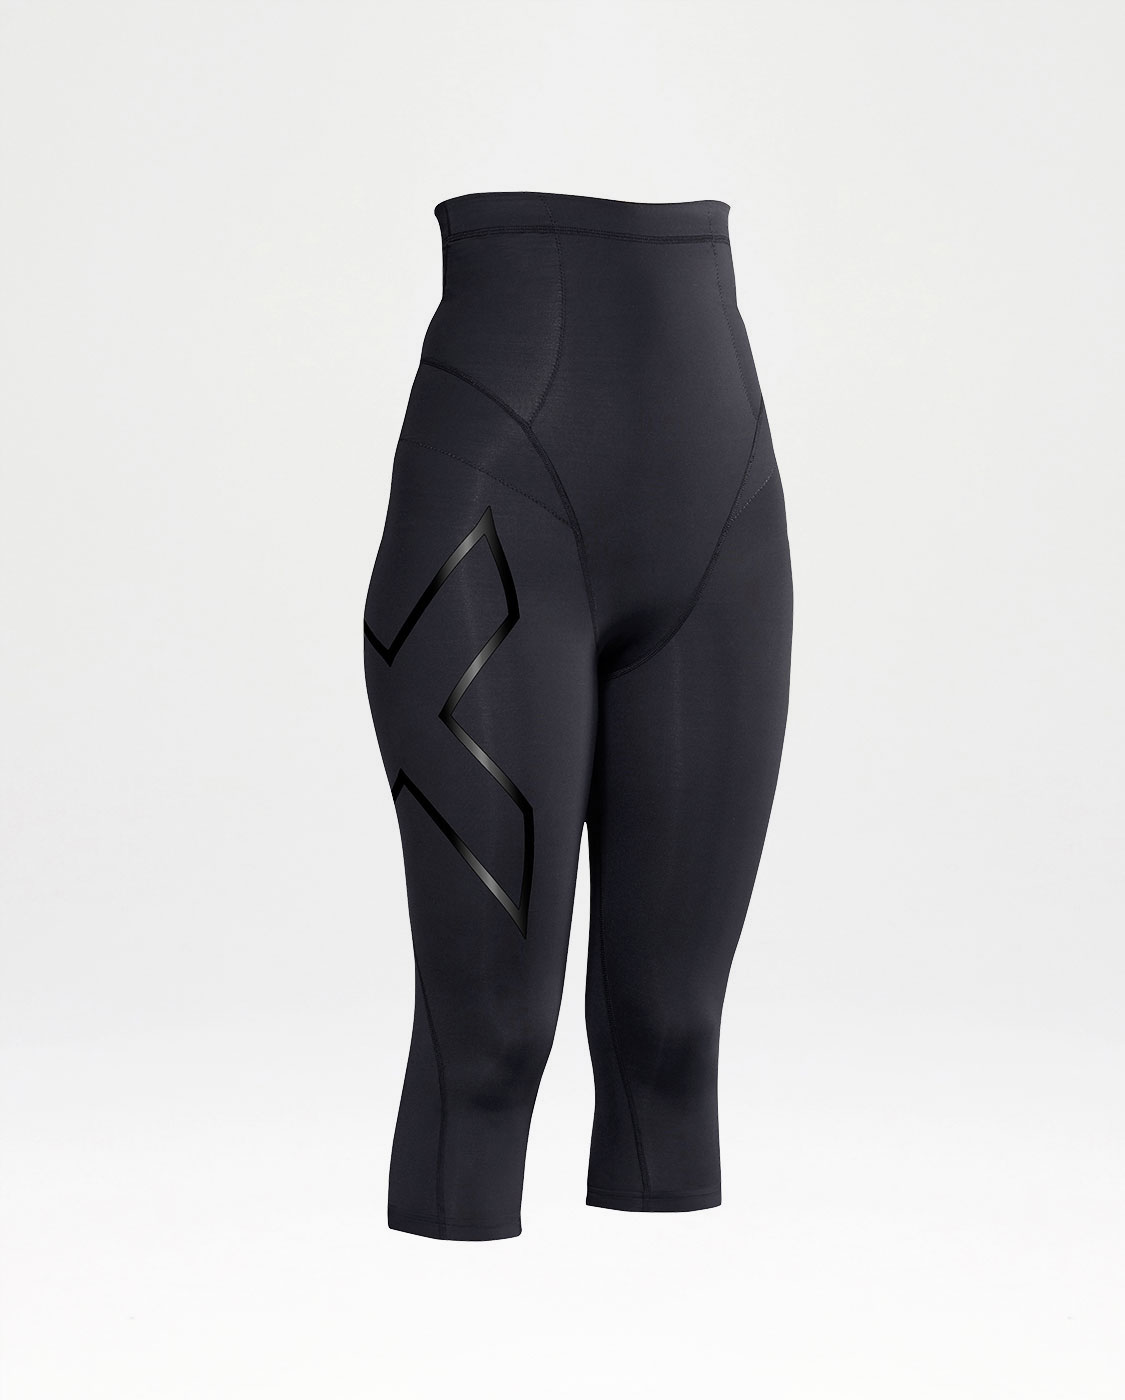 2xu Postnatal 3/4 tights black:black